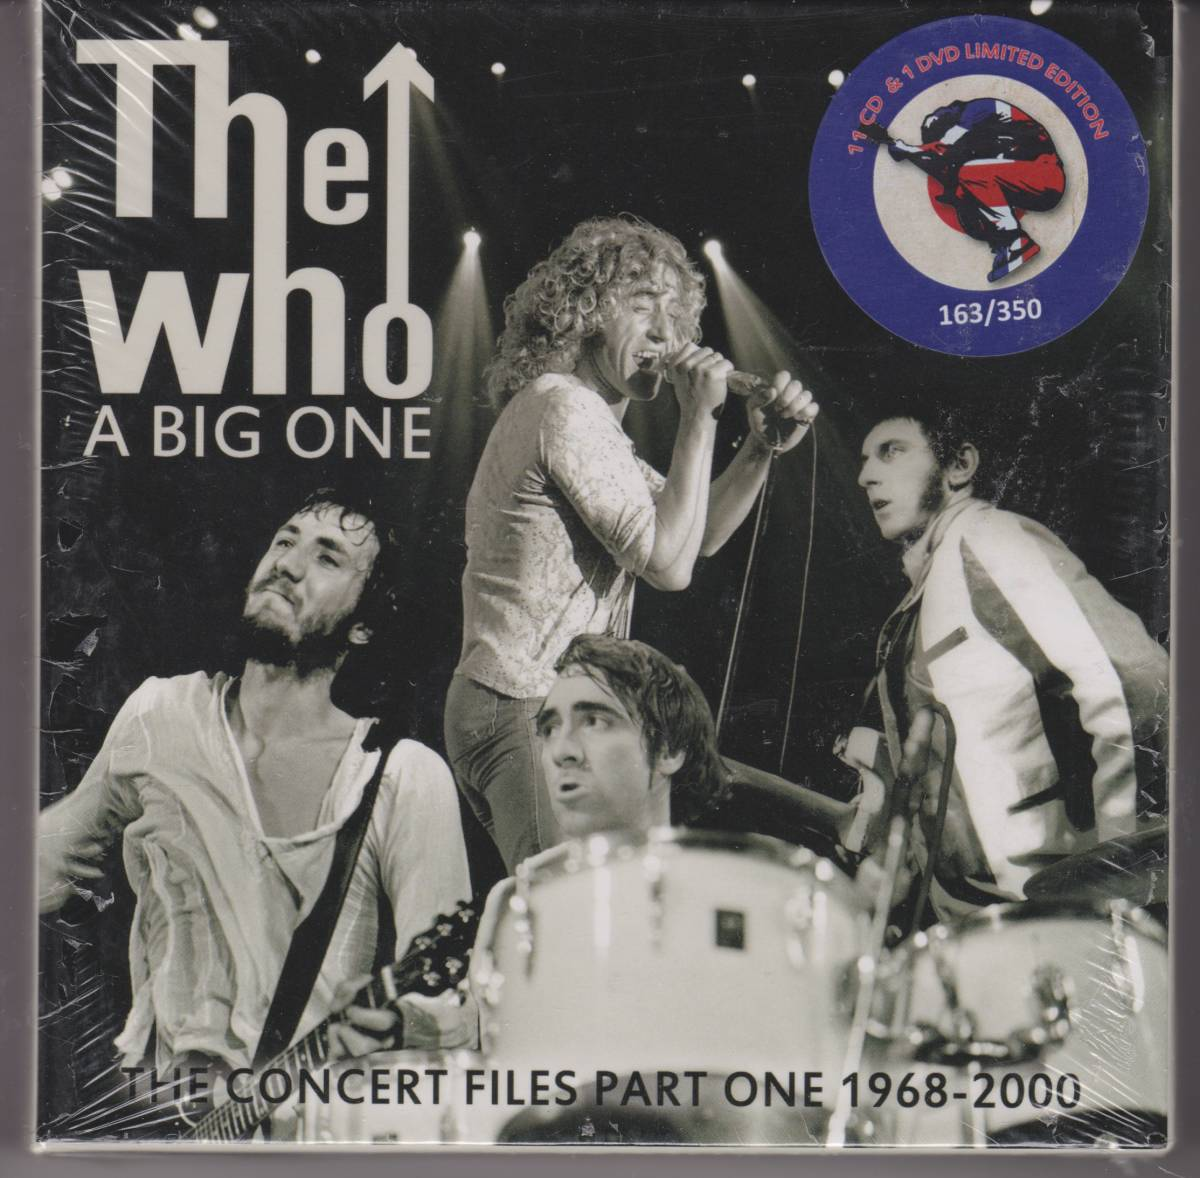 The Who ザ・フー A Big One-The Concert Files Part One 1968-2000 350枚限定NTSC方式DVD付十一枚組CDボックス